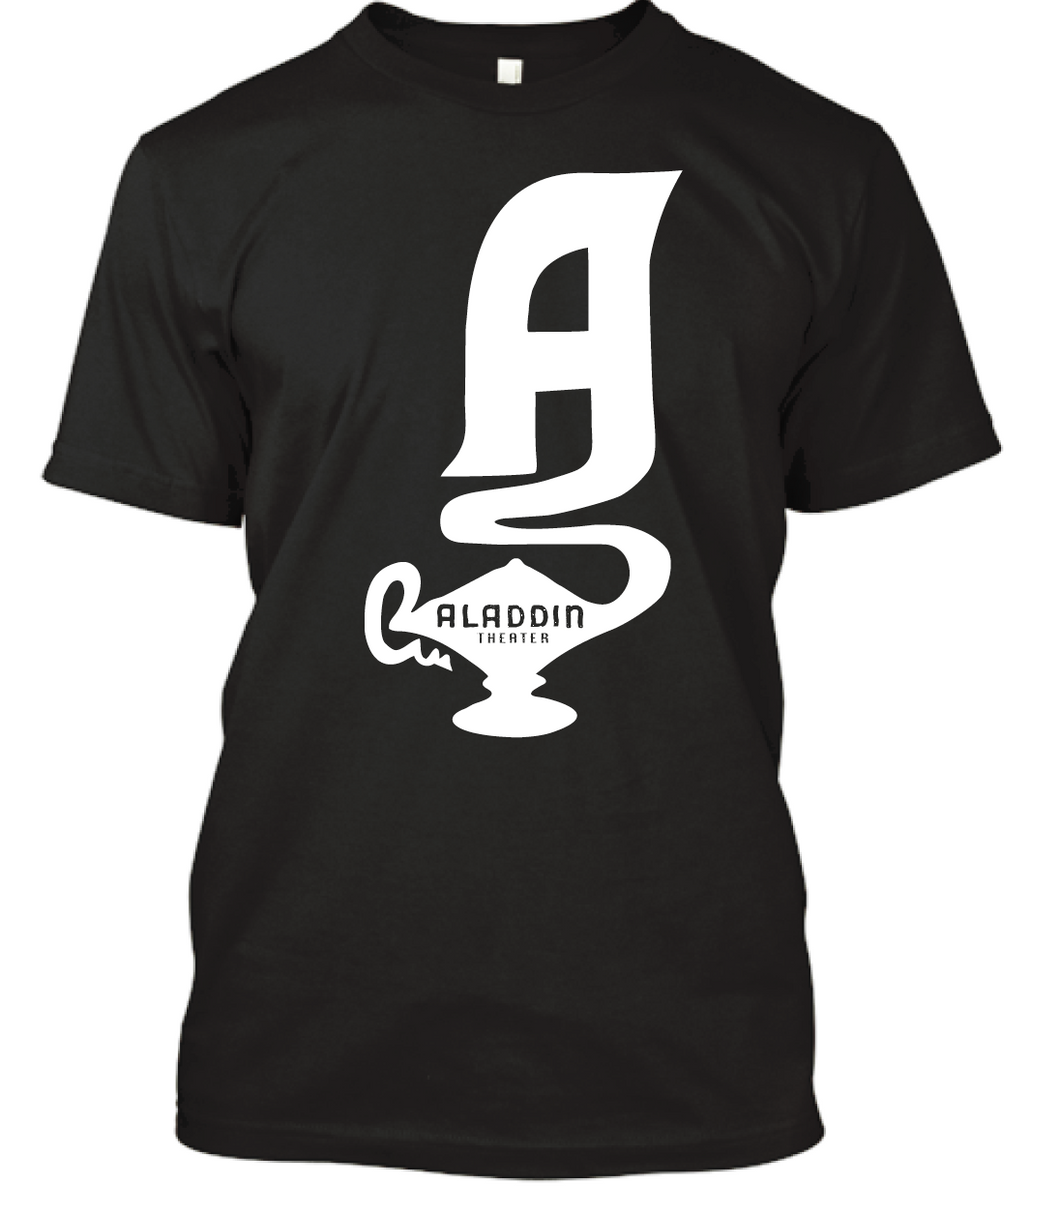 Aladdin Theater Short Sleeve T-shirt - Black